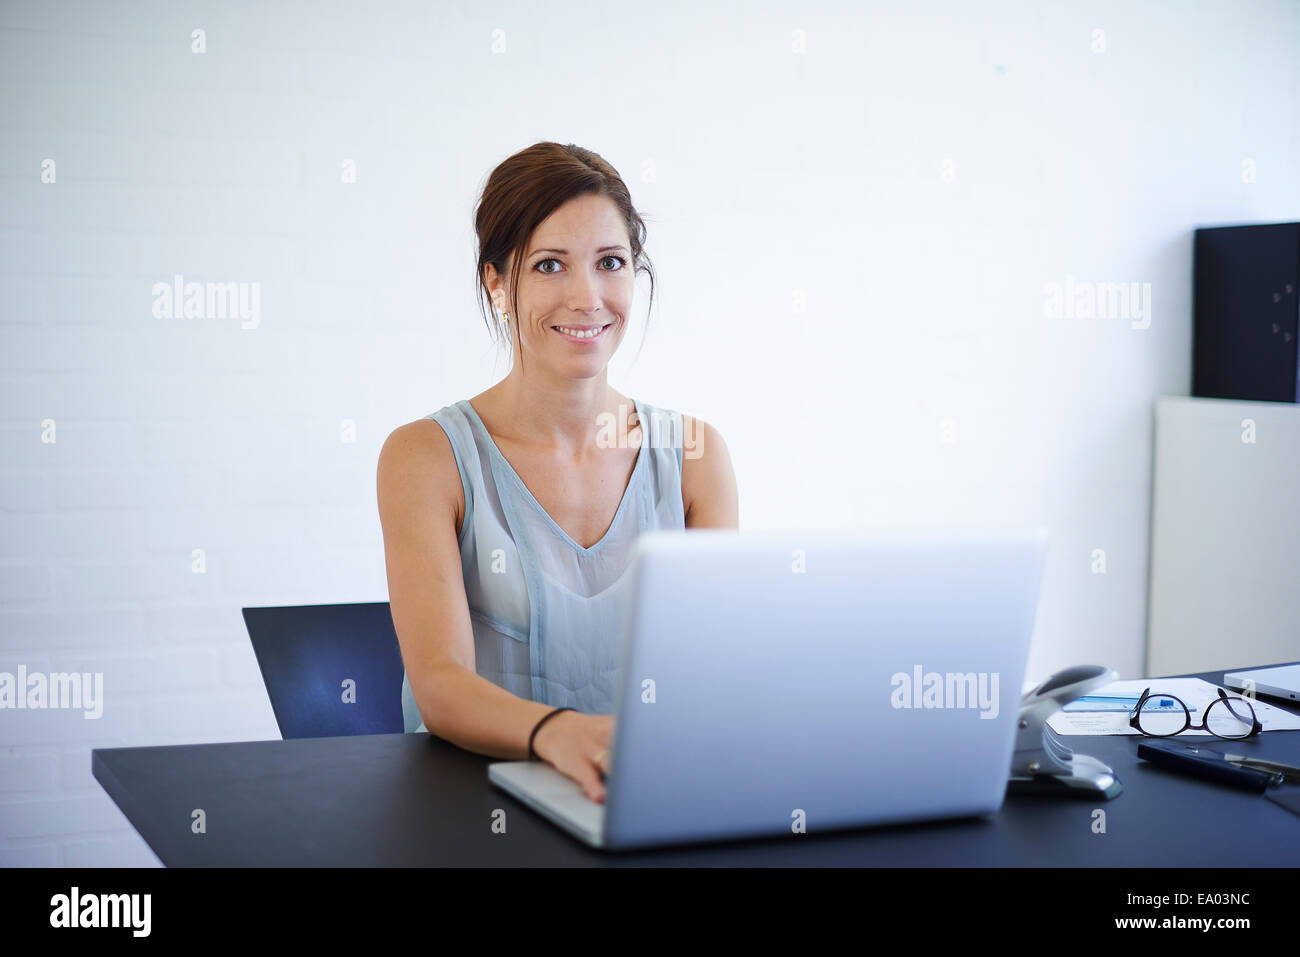 Portrait of mid adult woman working from home on laptop Photo Stock